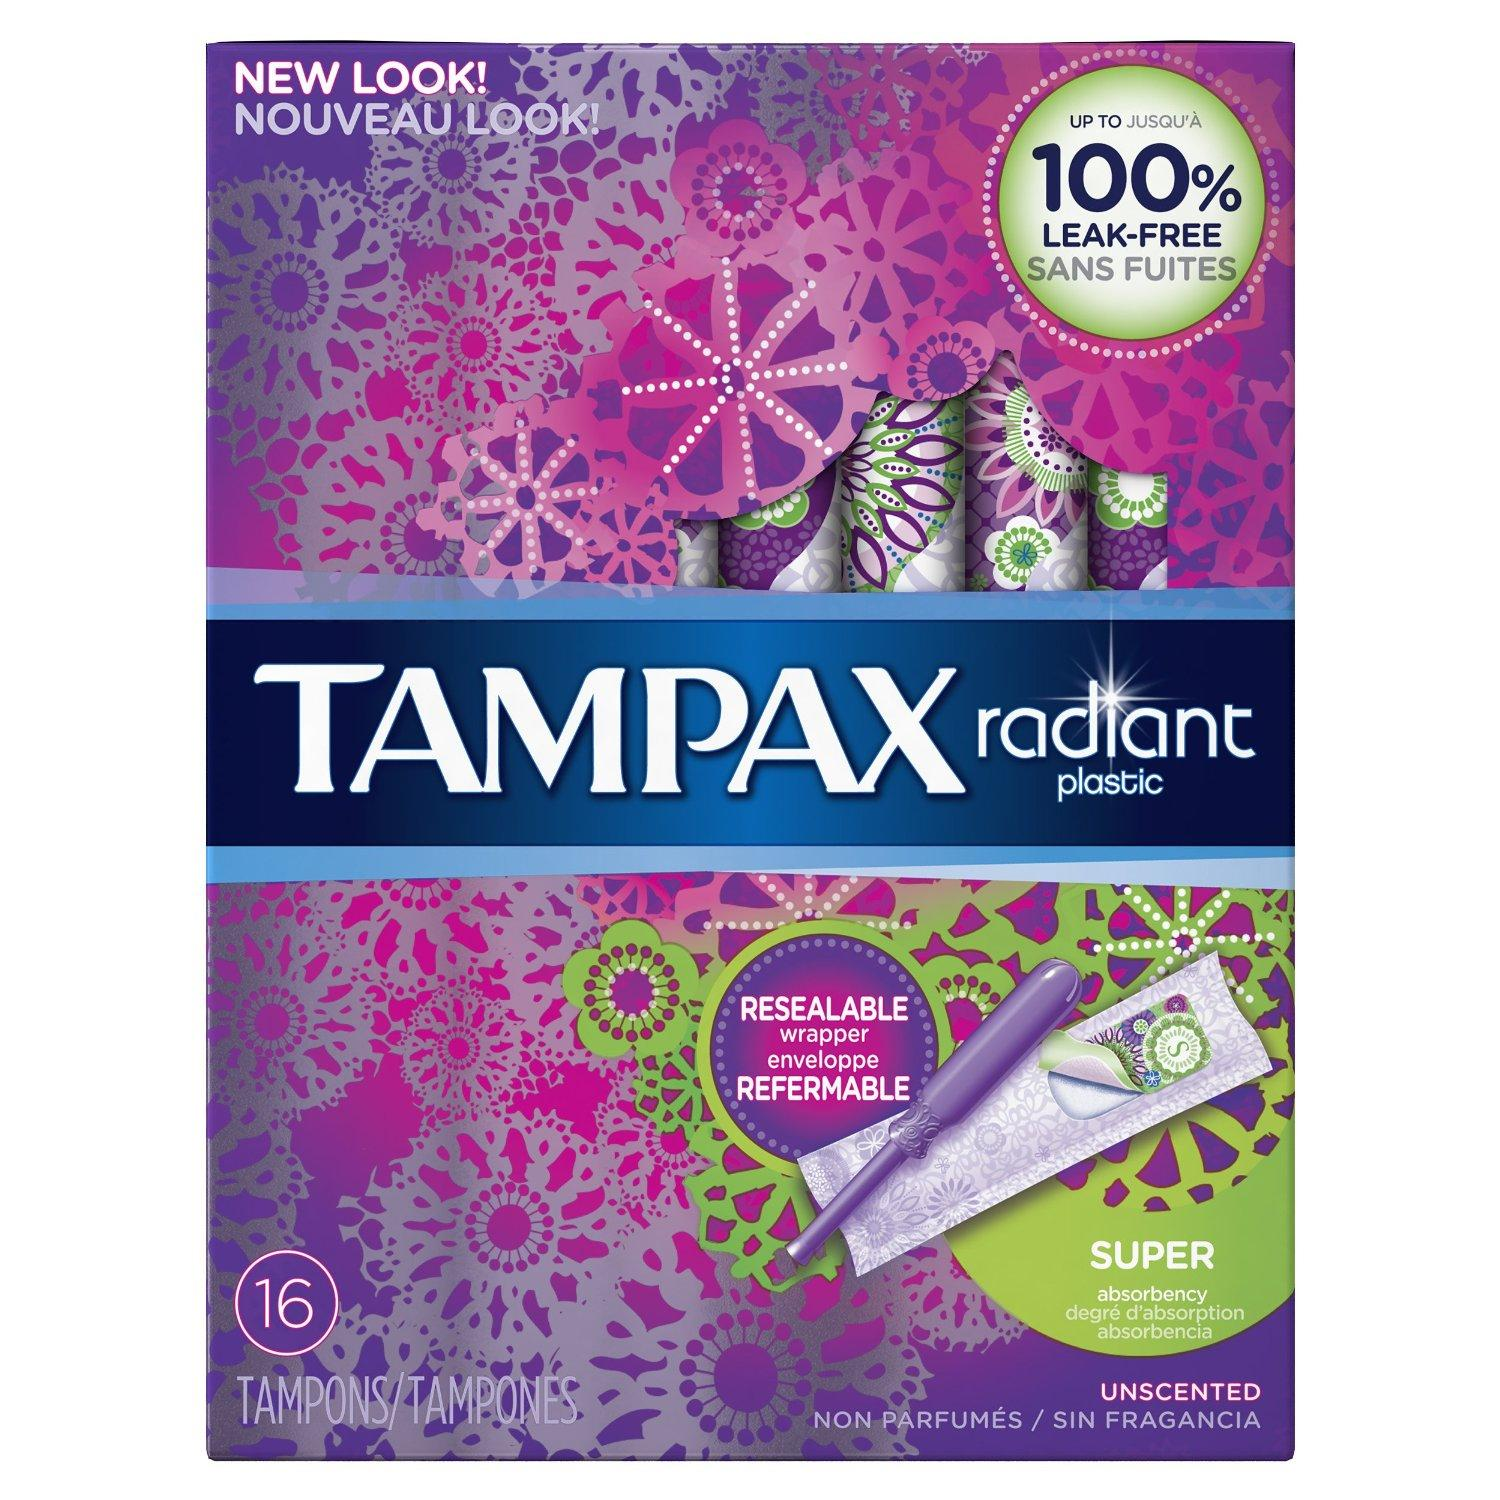 $2.97 Tampax Radiant plastic Super absorbency unscented tampons 16ct